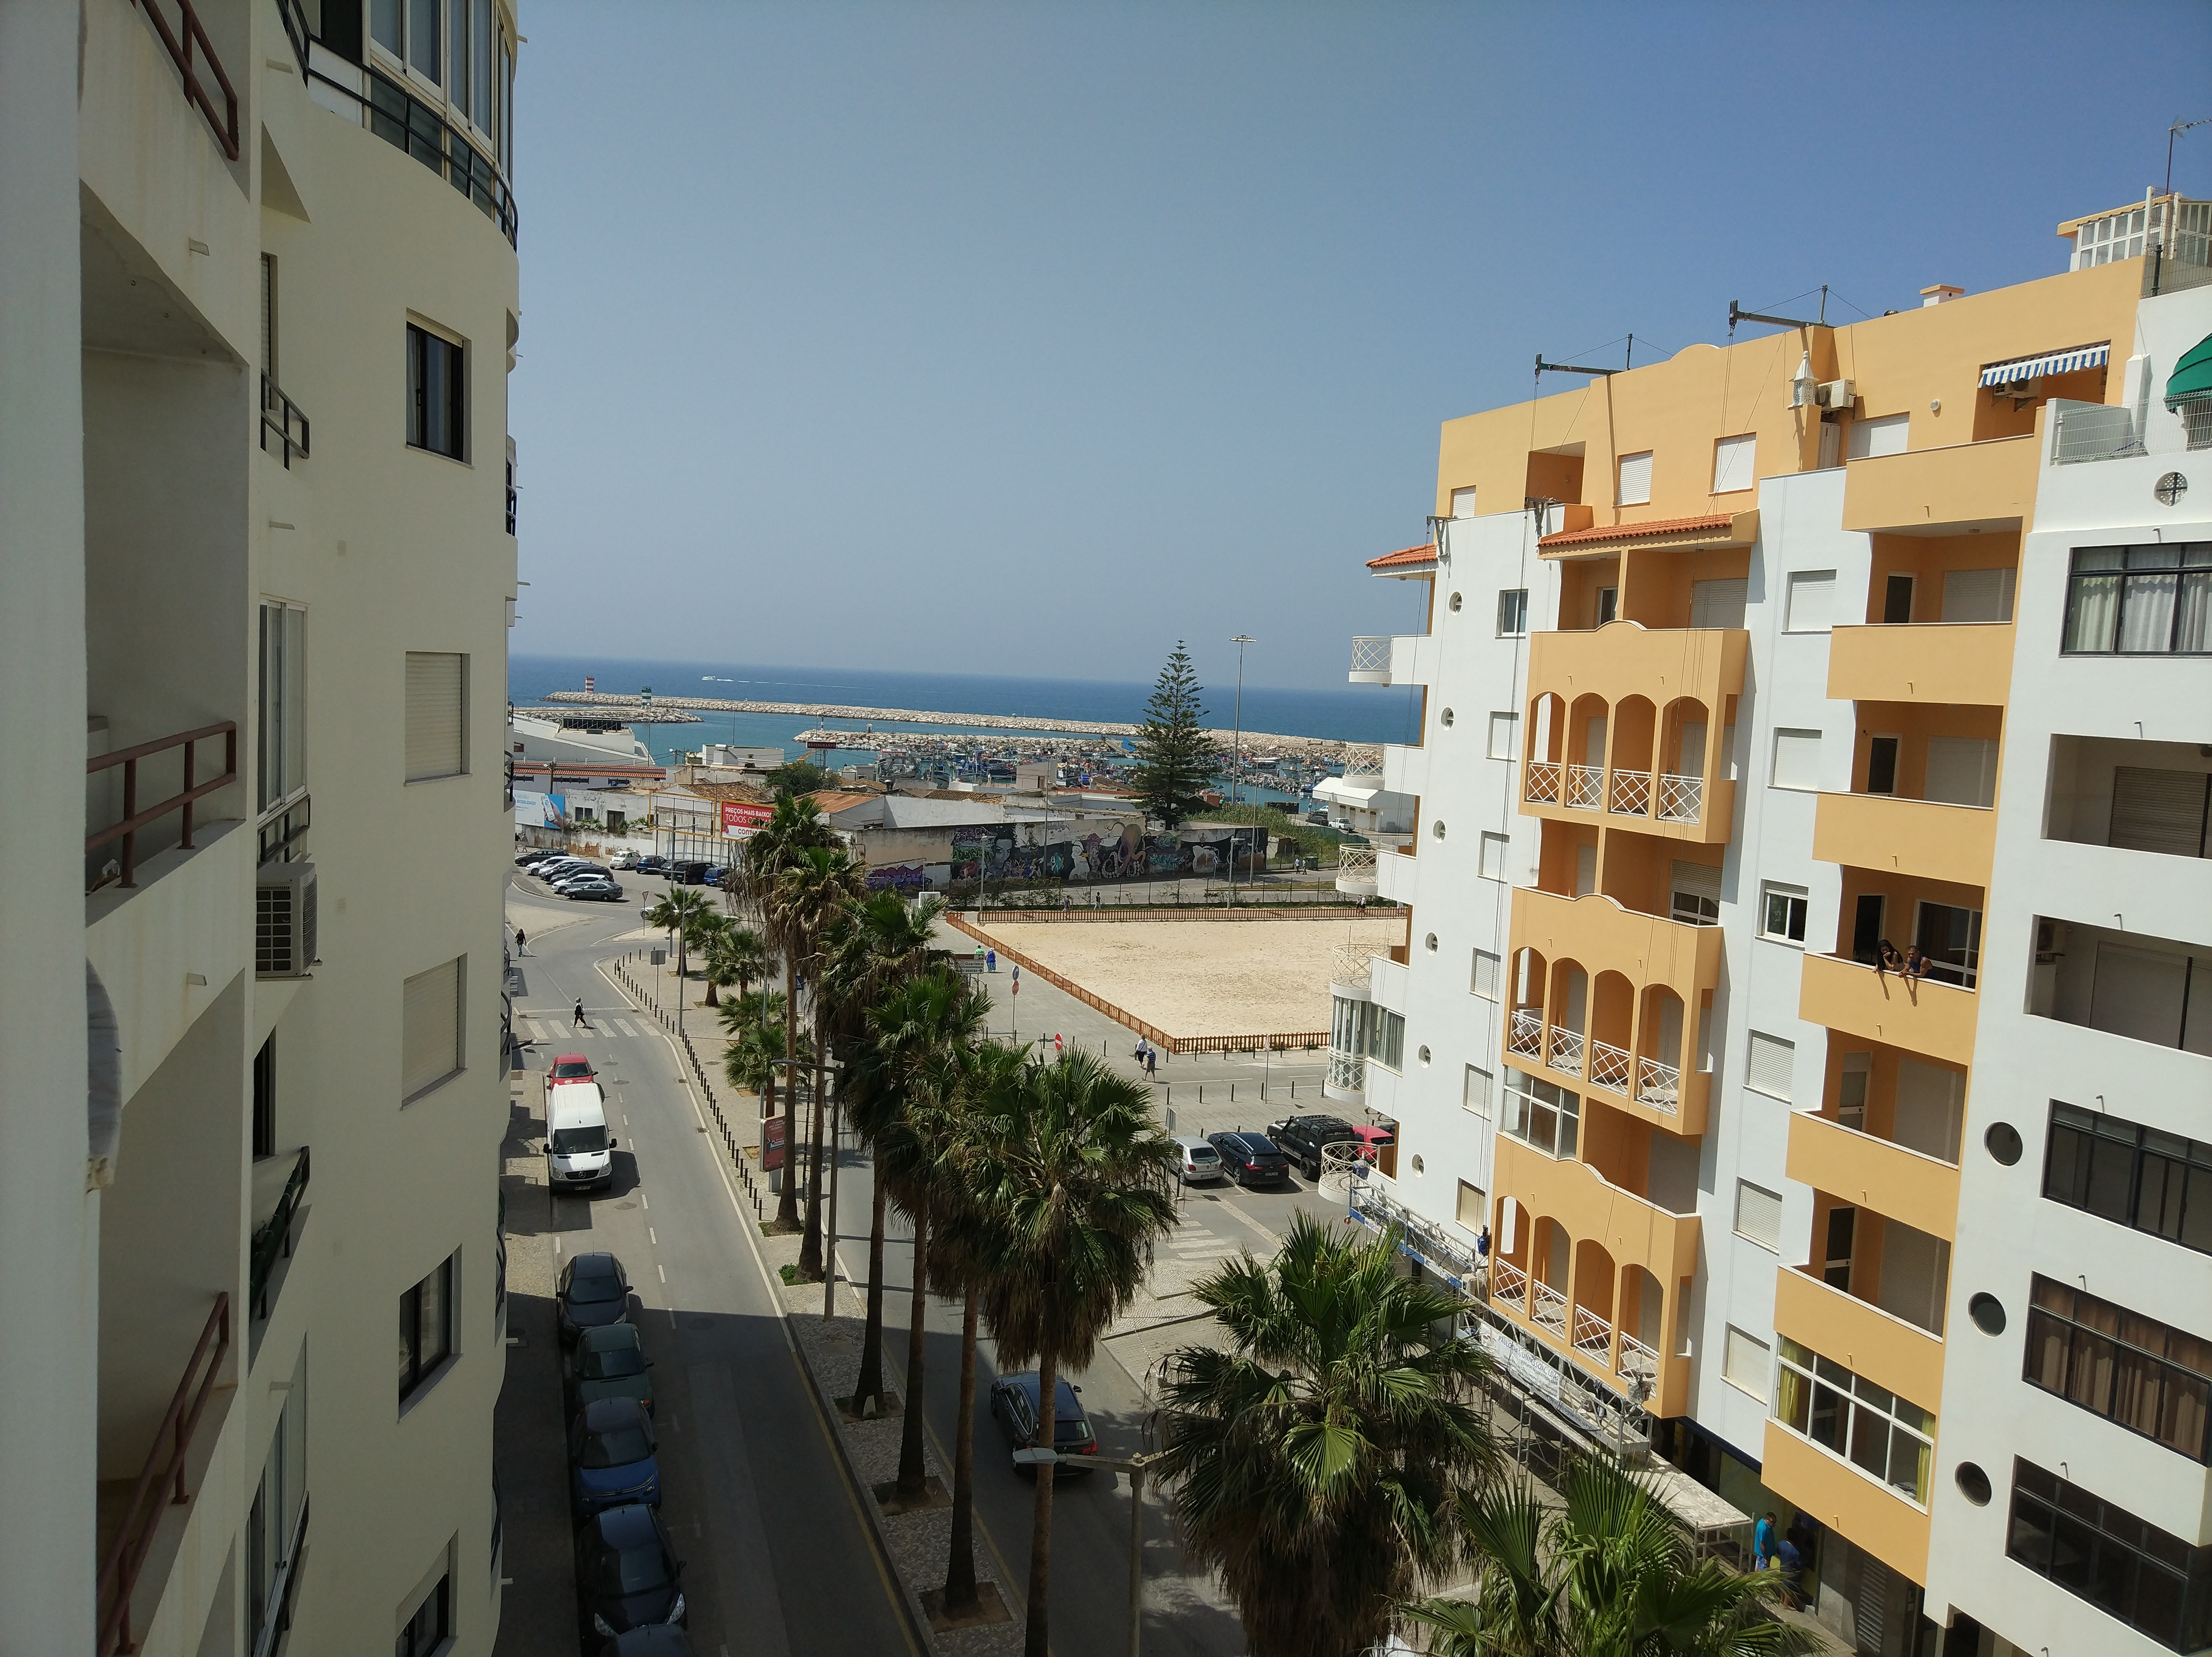 Apartment for 2 persons  + 1 child approx. 60 m² in Quarteira, Algarve (Western Algarve)